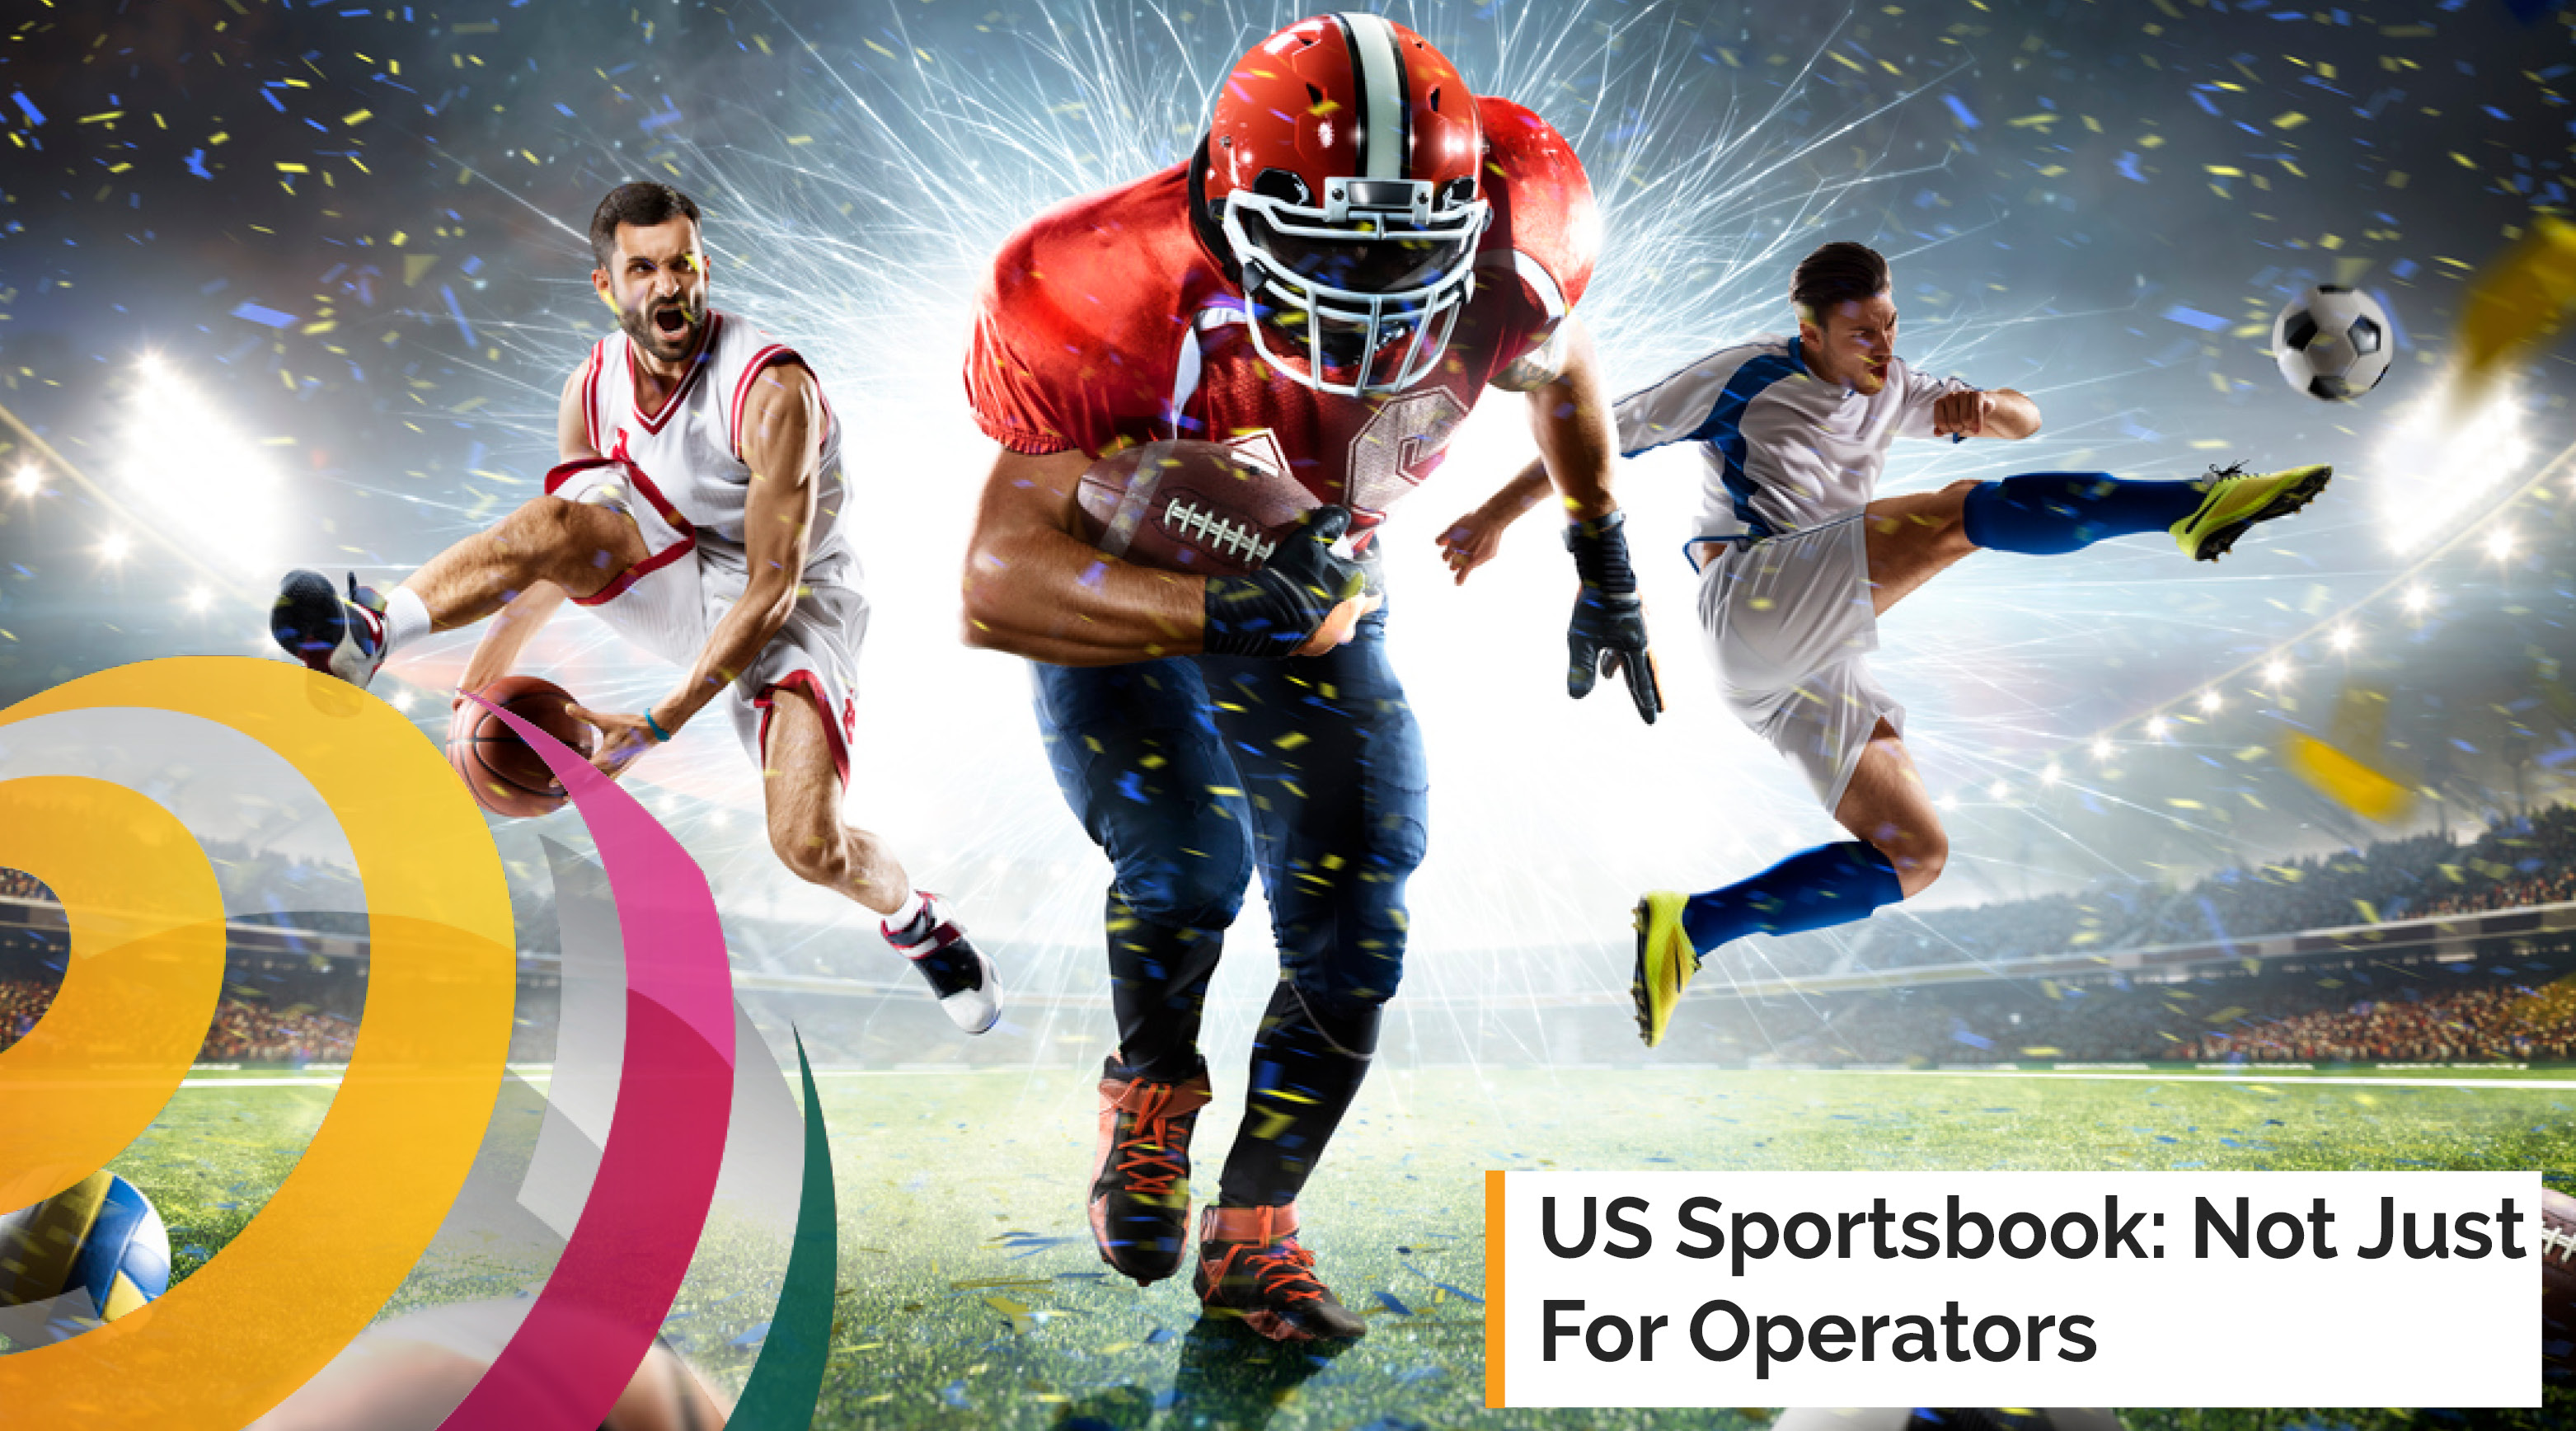 US Sportsbook: Not Just For Operators